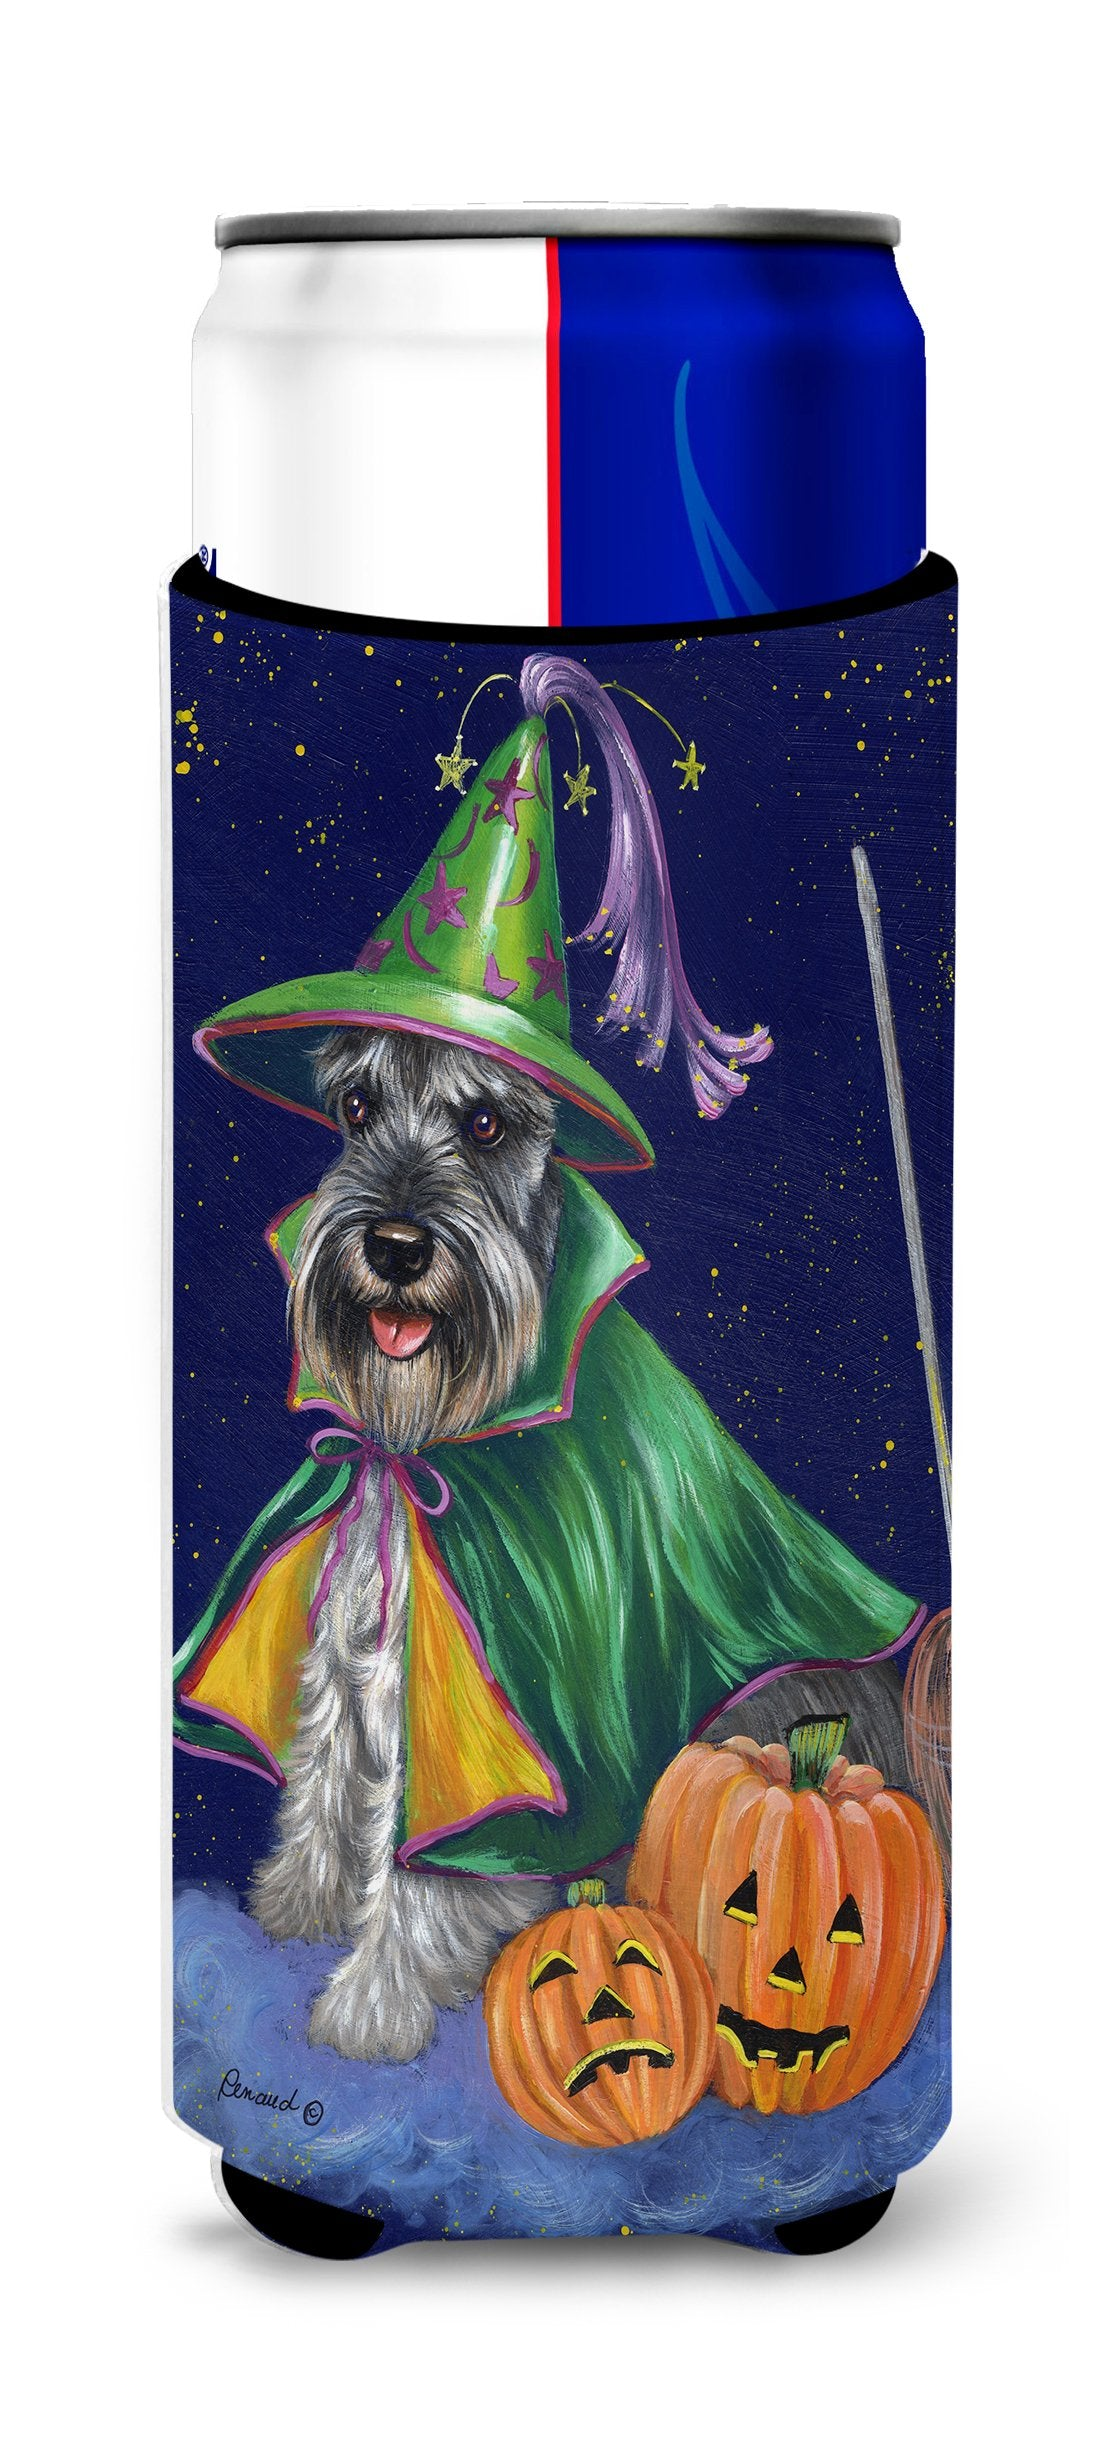 Schnauzer Halloween Good Witch Ultra Hugger for slim cans PPP3159MUK by Caroline's Treasures